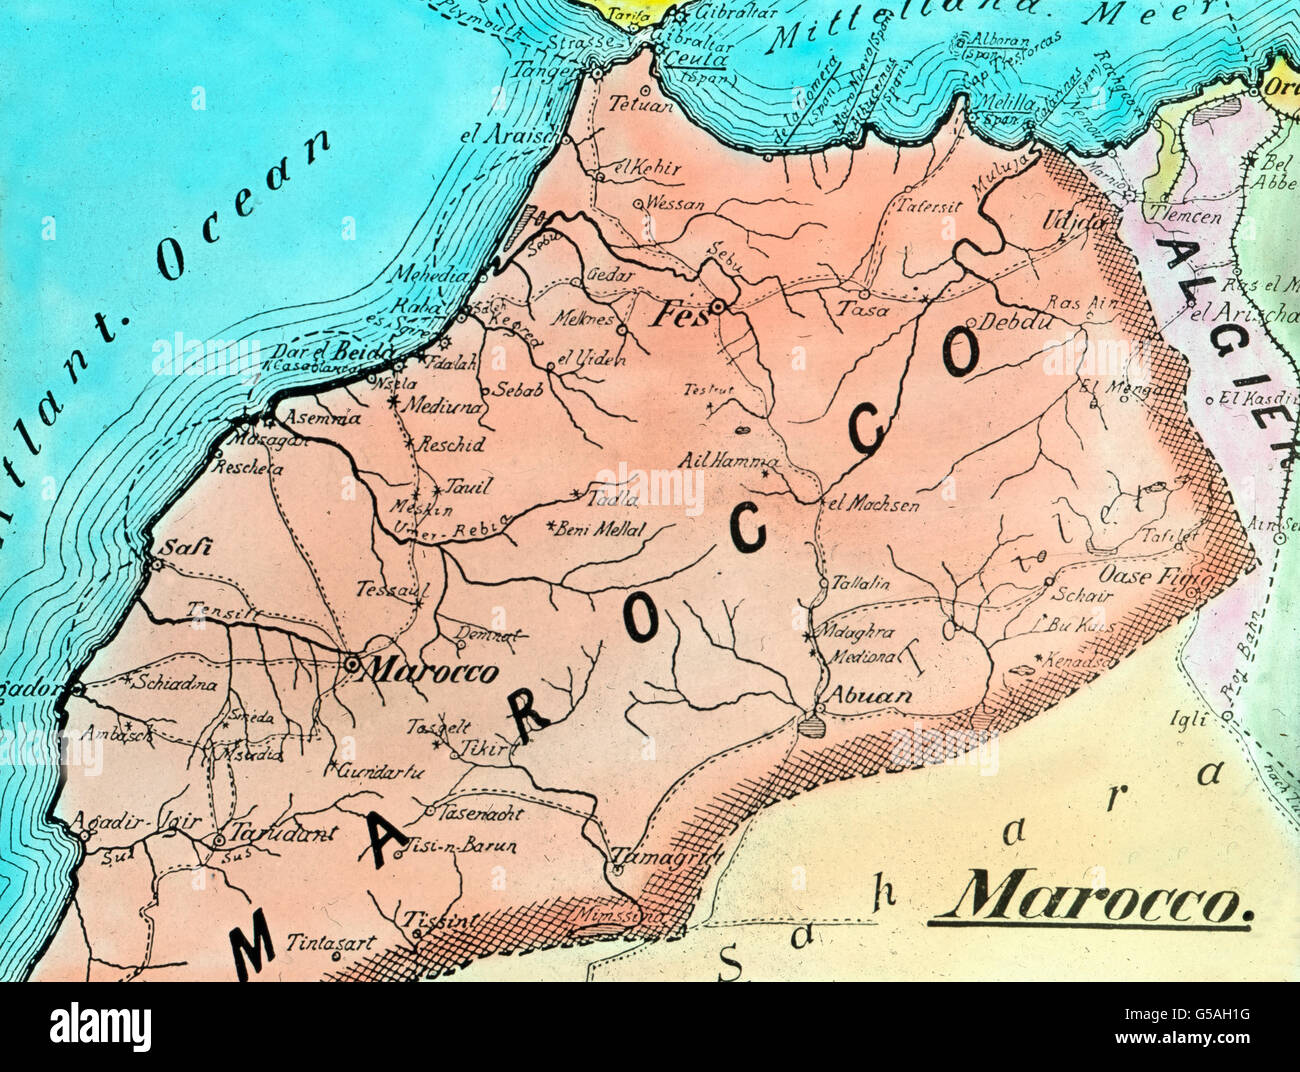 geography of the north of morocco